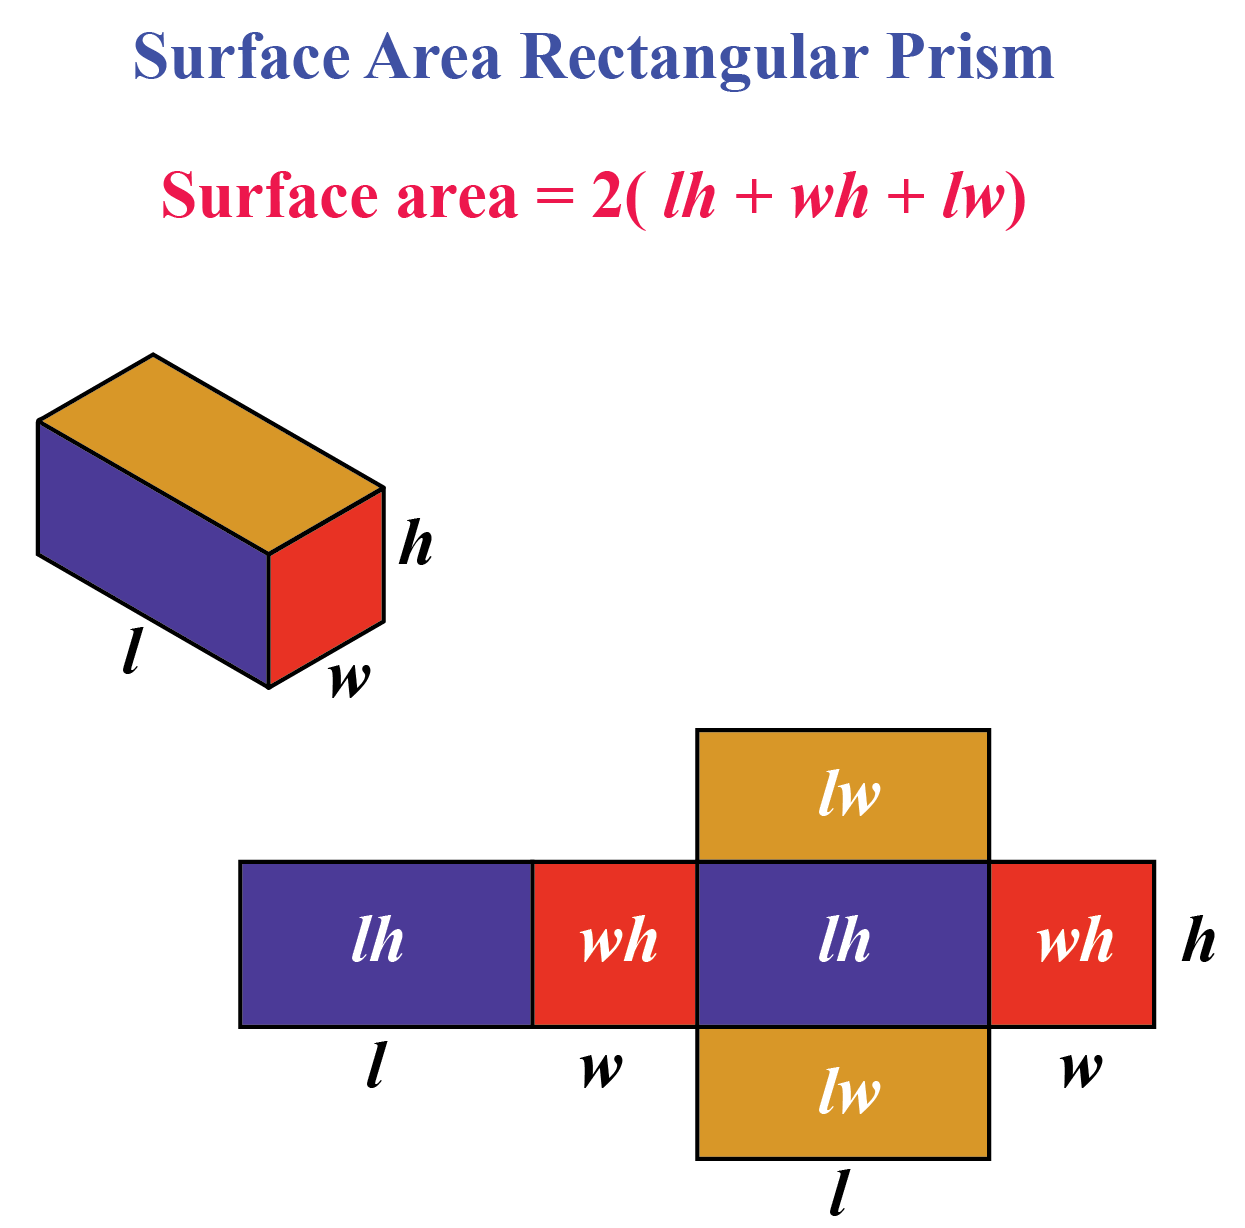 Surface area of rectangular prism